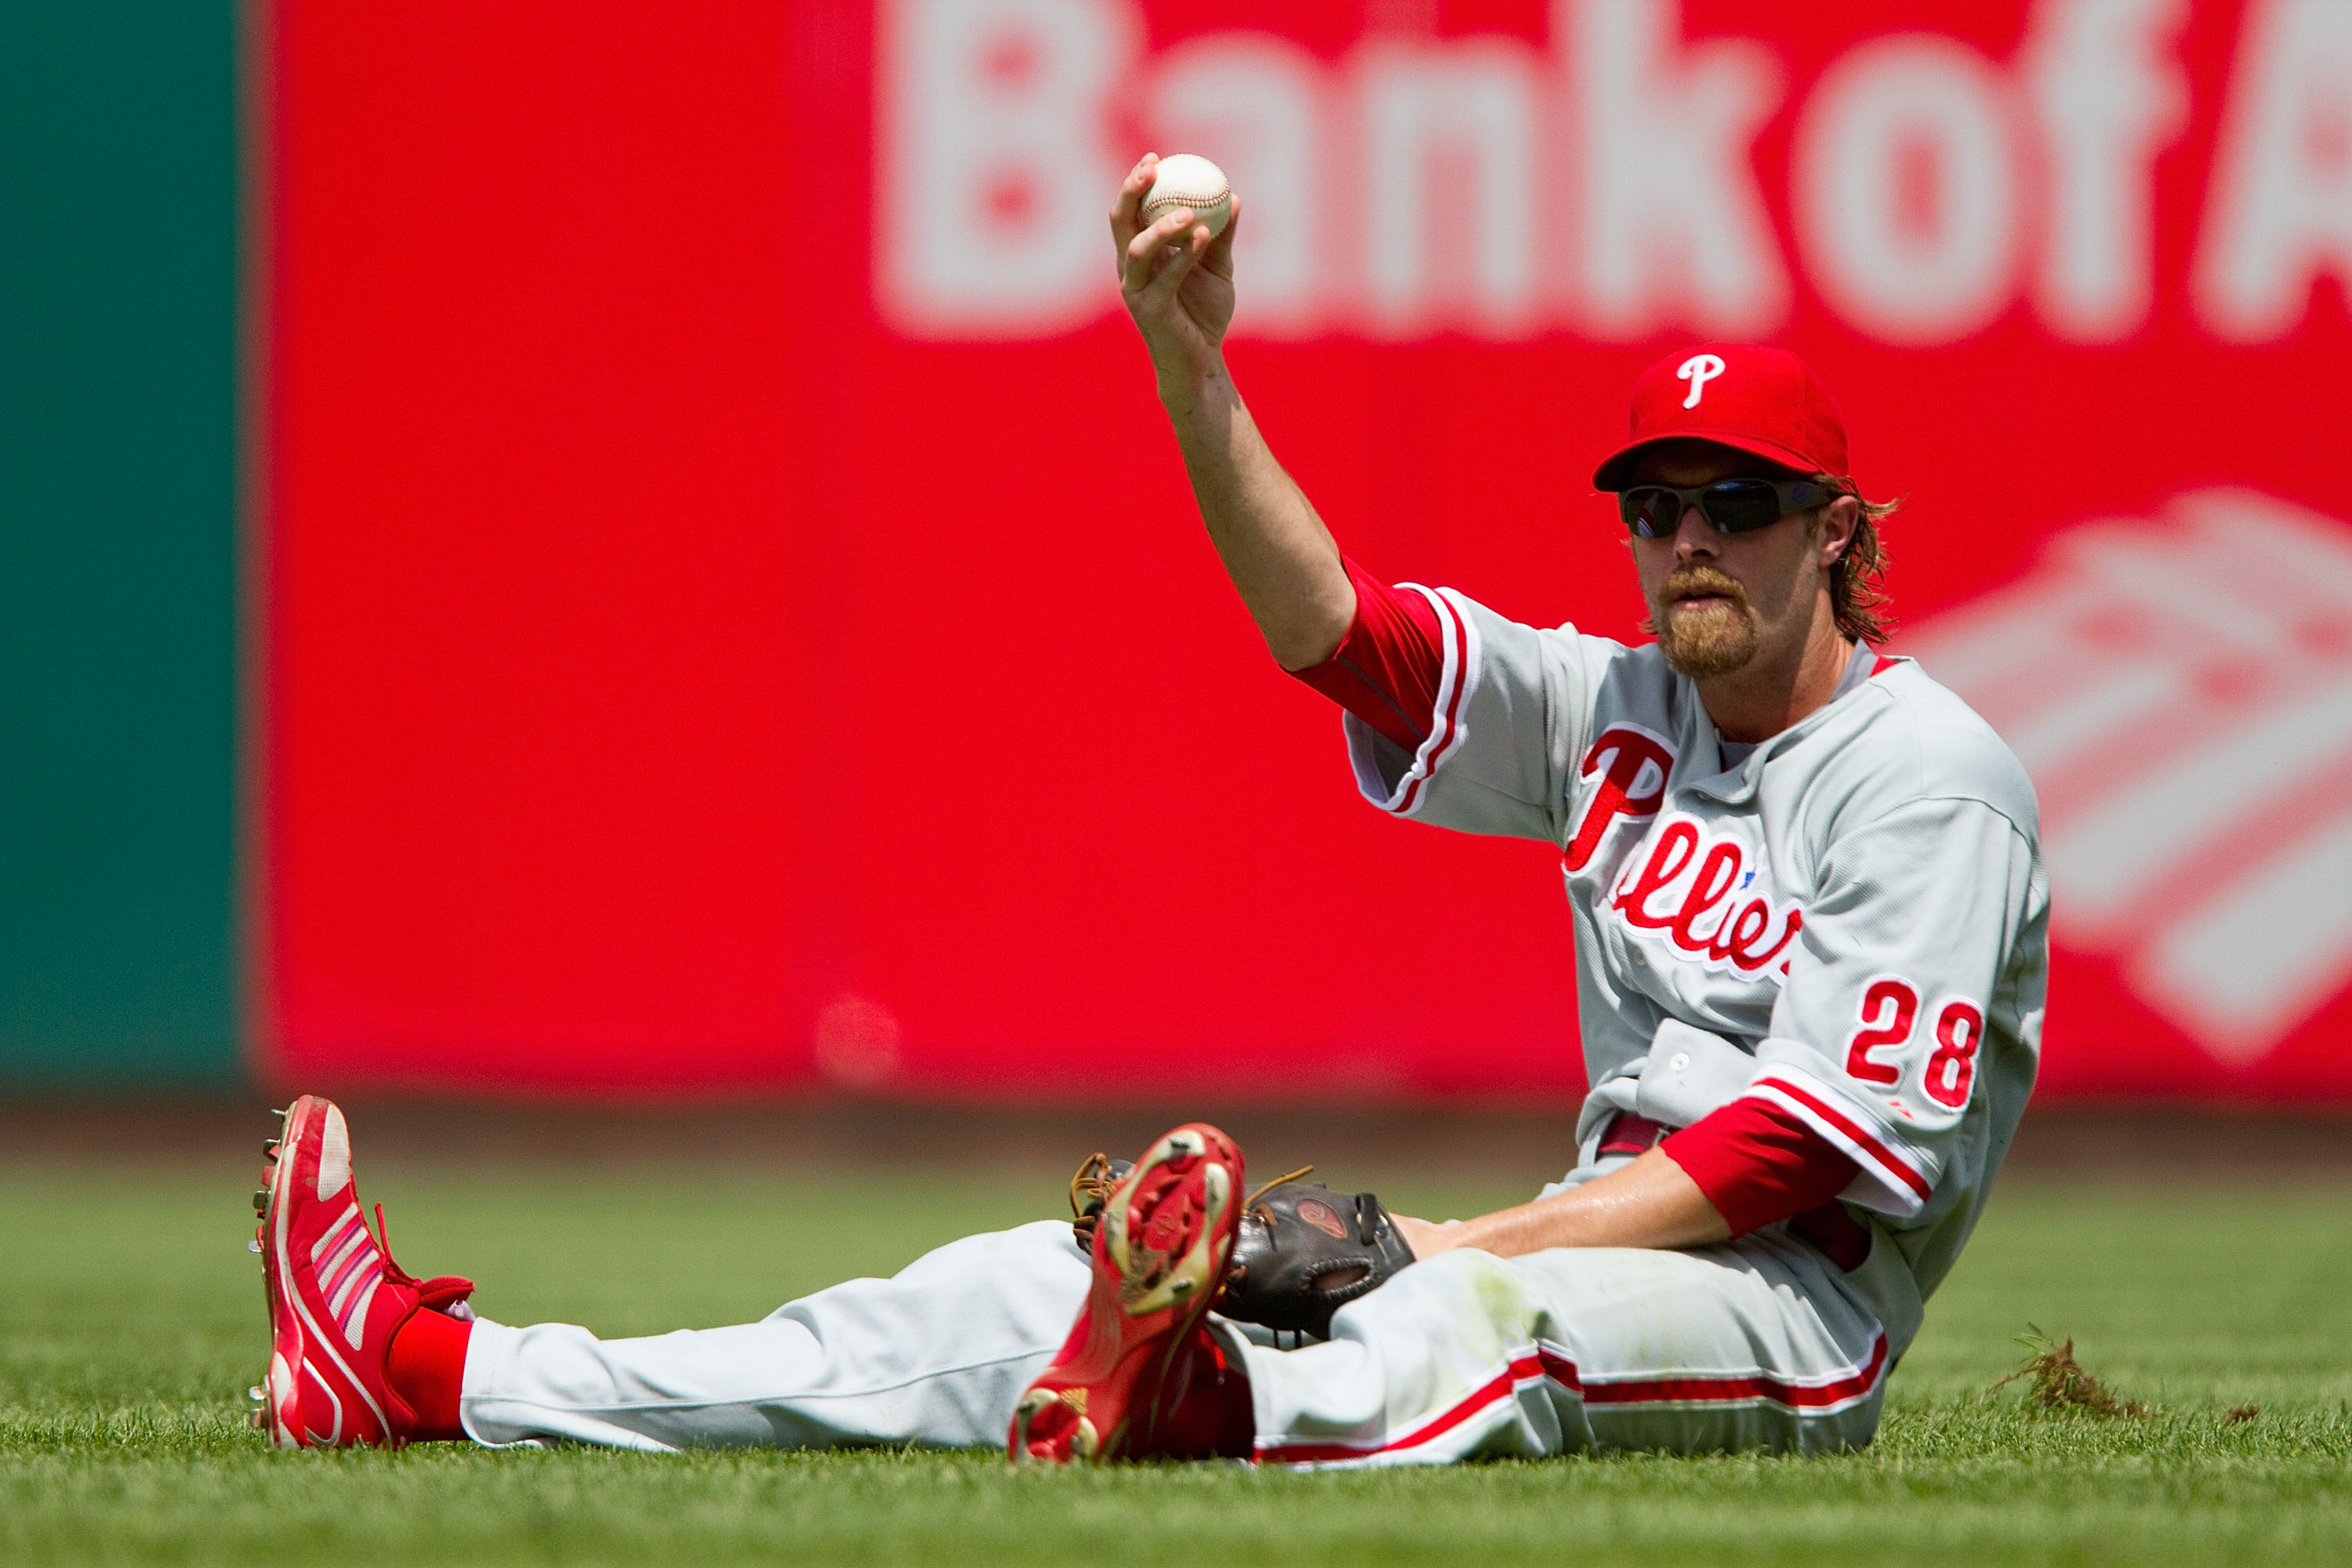 ST. LOUIS - JULY 22: Jayson Werth #28 of the Philadelphia Phillies shows the ball after making a sliding catch against the St. Louis Cardinals at Busch Stadium on July 22, 2010 in St. Louis, Missouri. The Phillies defeated the Cardinals 2-0.  (Photo by Di